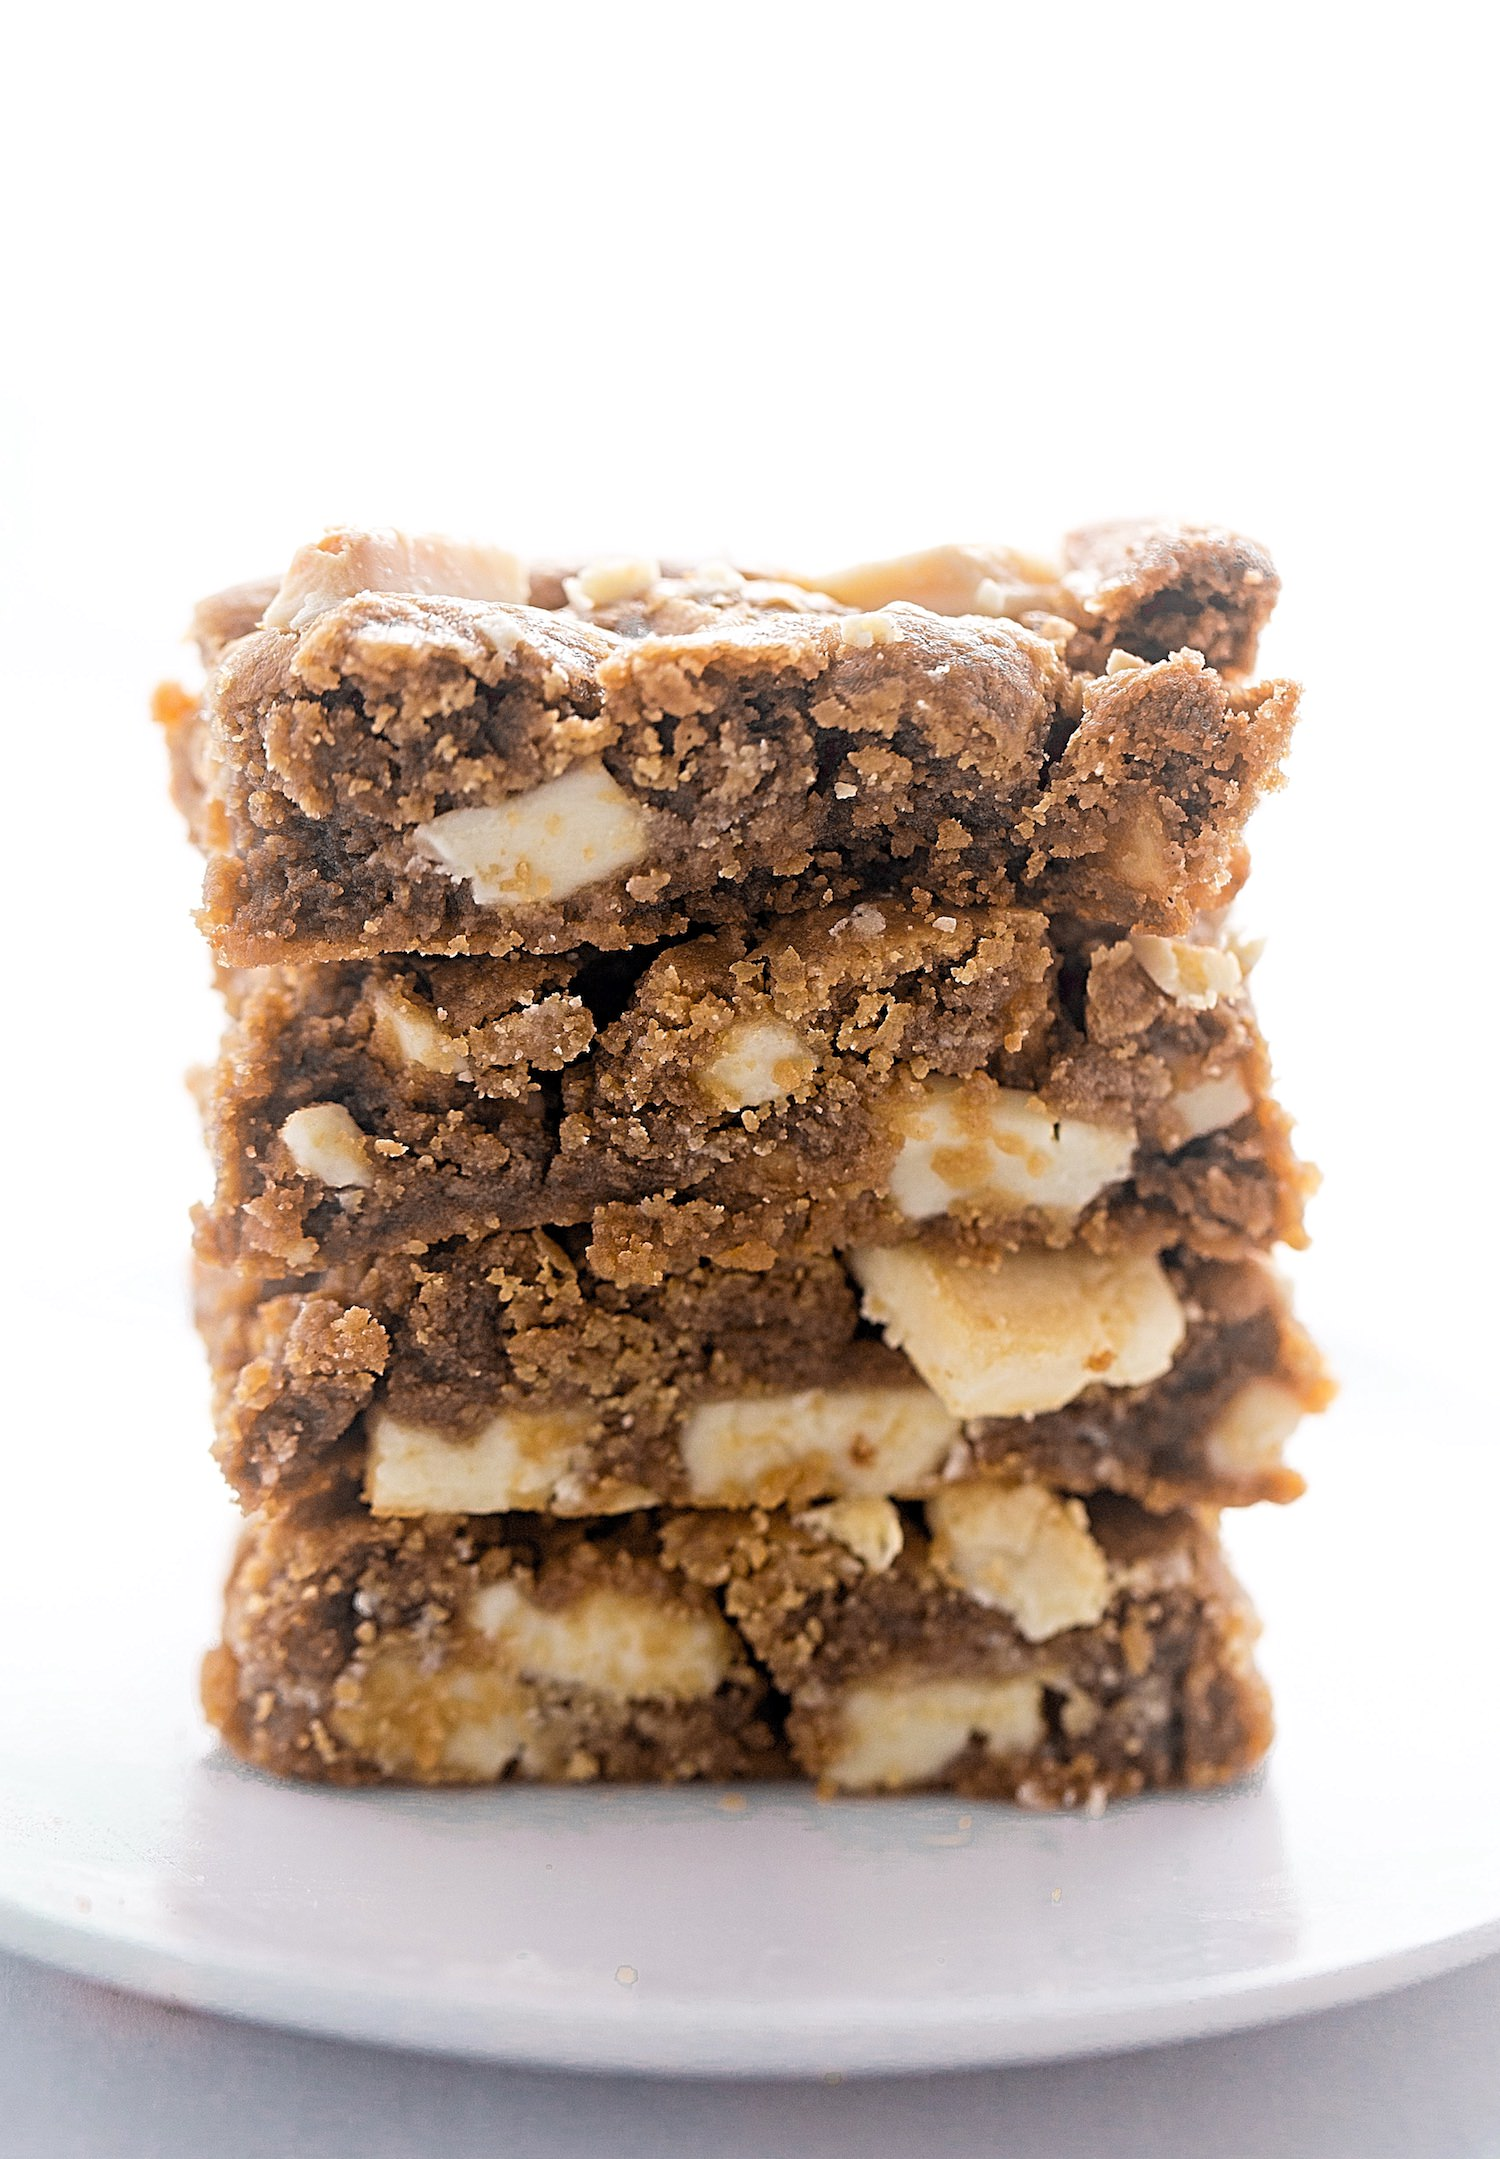 Flourless Peanut Butter White Chocolate Bars: soft, rich, gooey peanut butter bars packed with white chocolate chunks. Gluten-free and so easy!   TrufflesandTrends.com